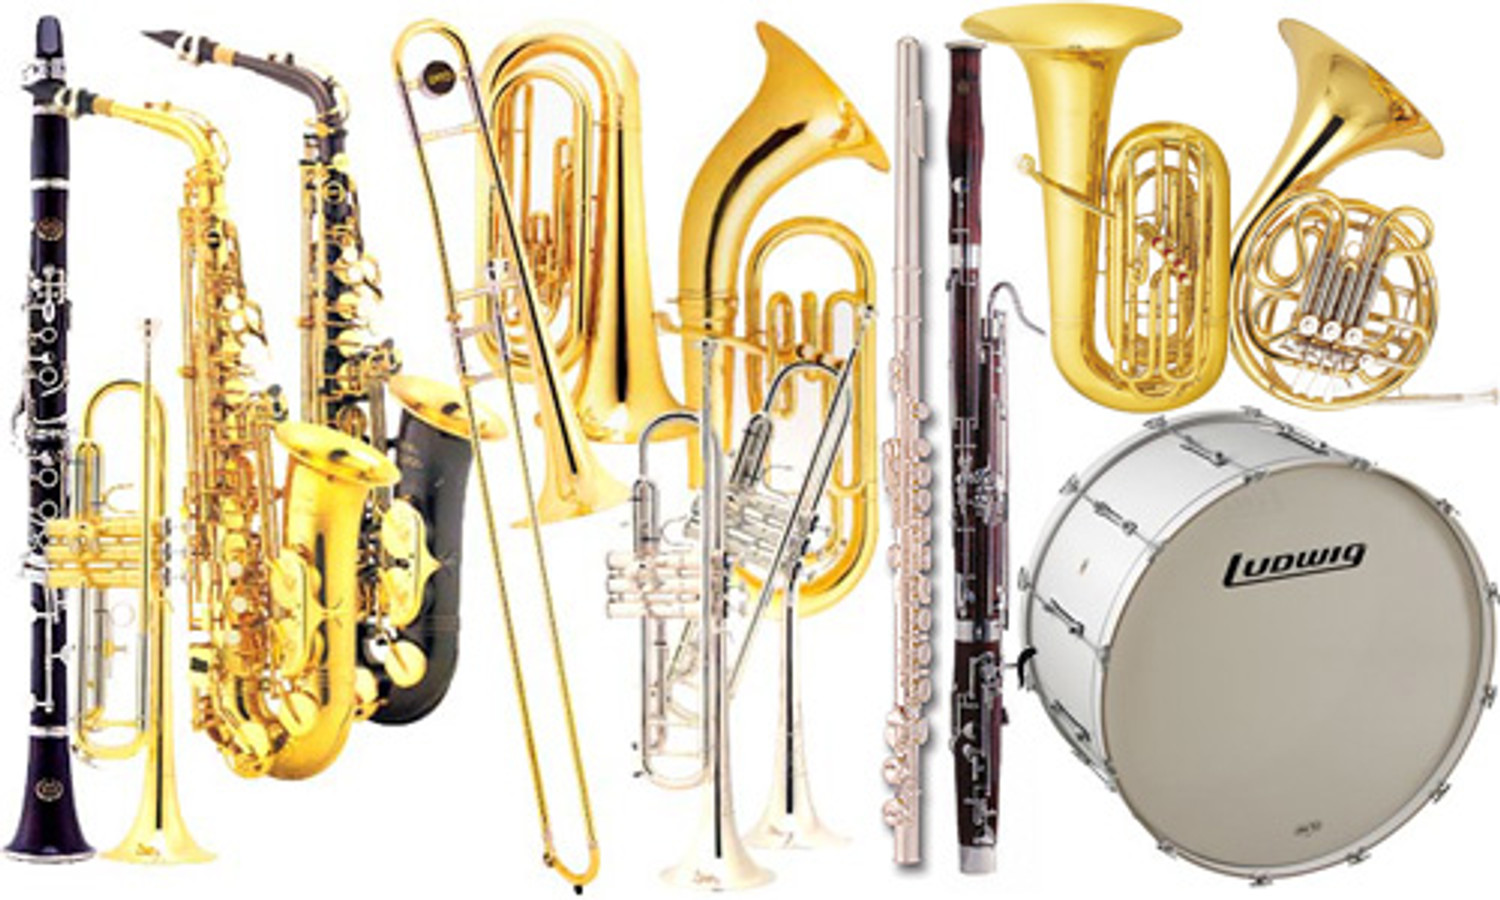 SAVE 20% ON BAND & ORCHESTRA ACCESSORIES